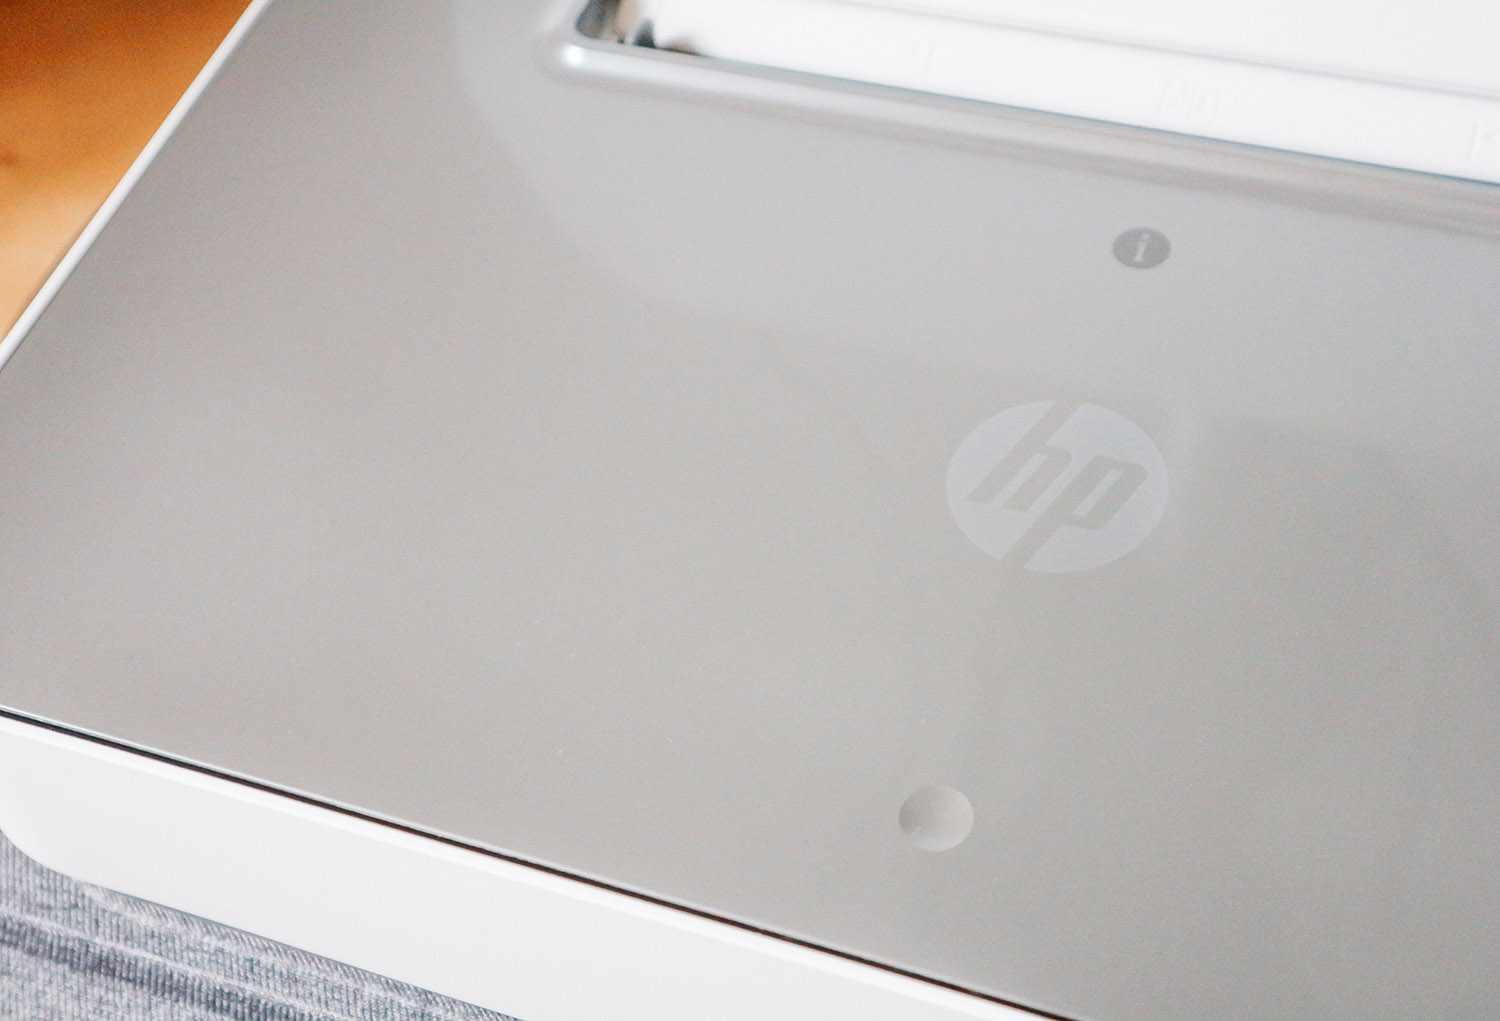 hp, hp tango, review, printer, design